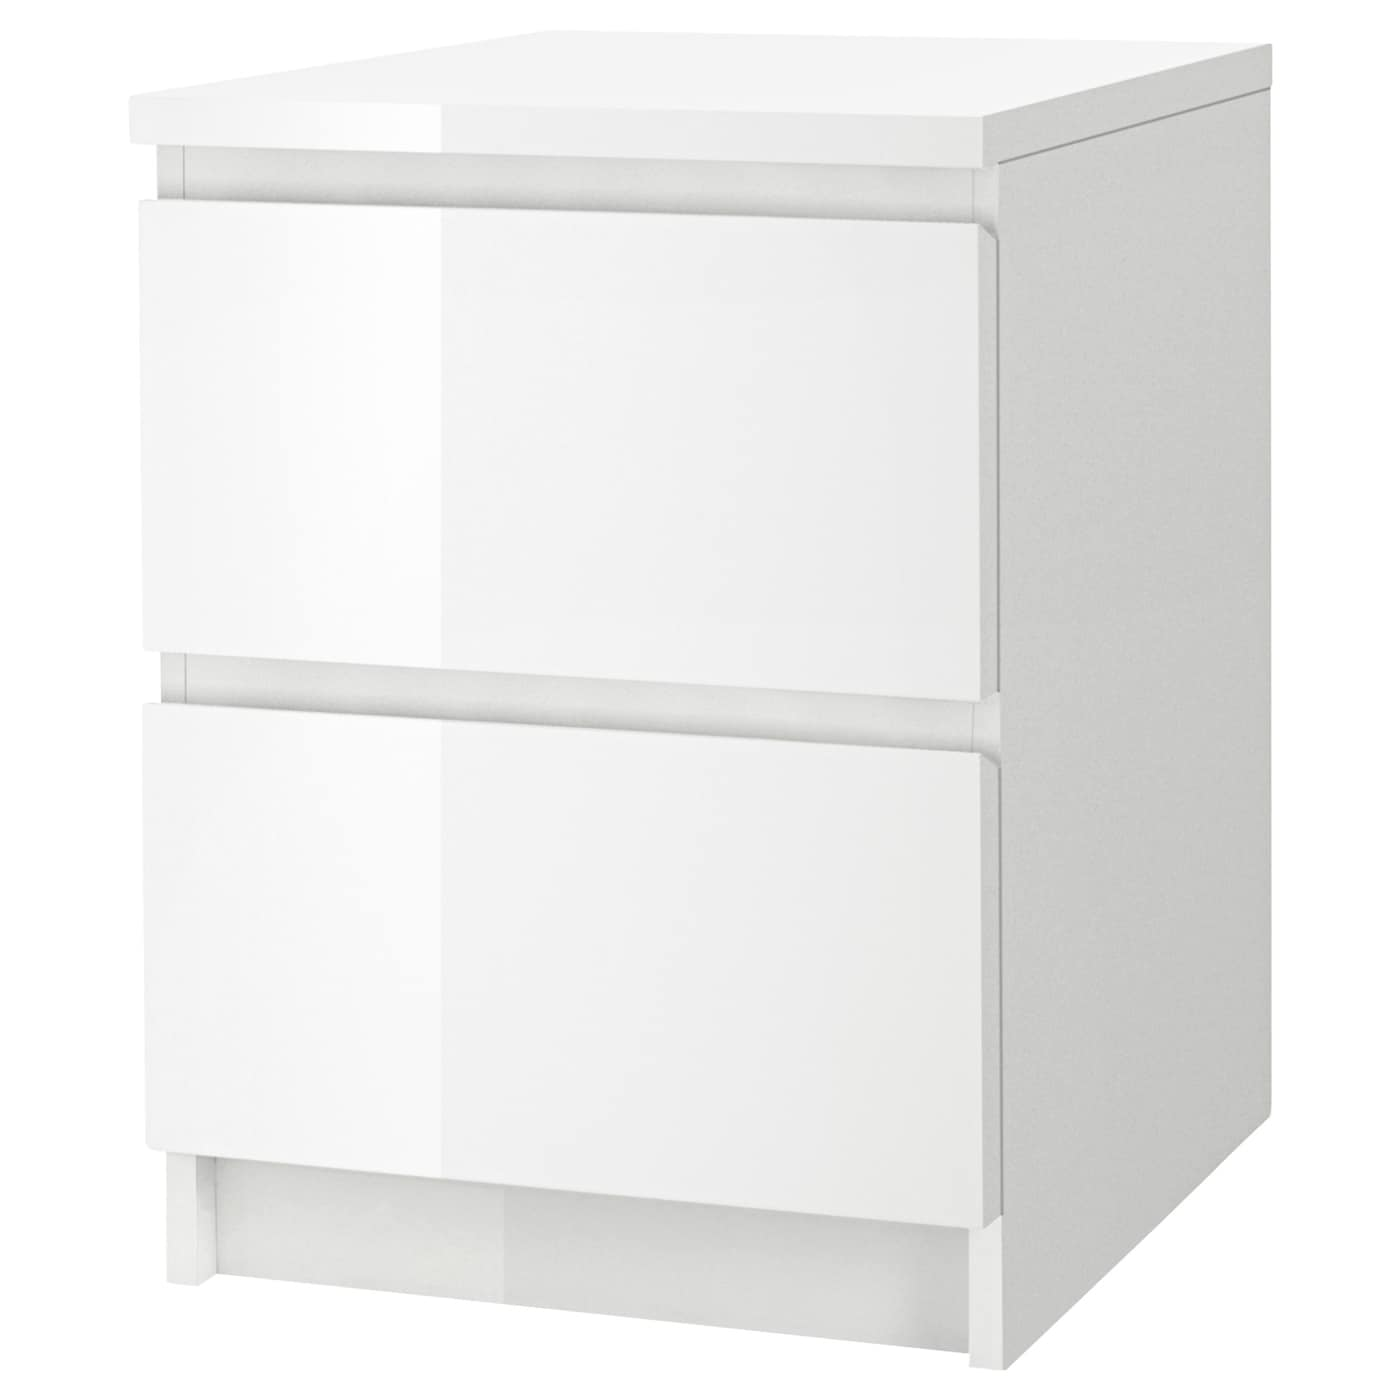 Malm chest of 2 drawers white high gloss 40x55 cm ikea for Schrank 2 50 breit